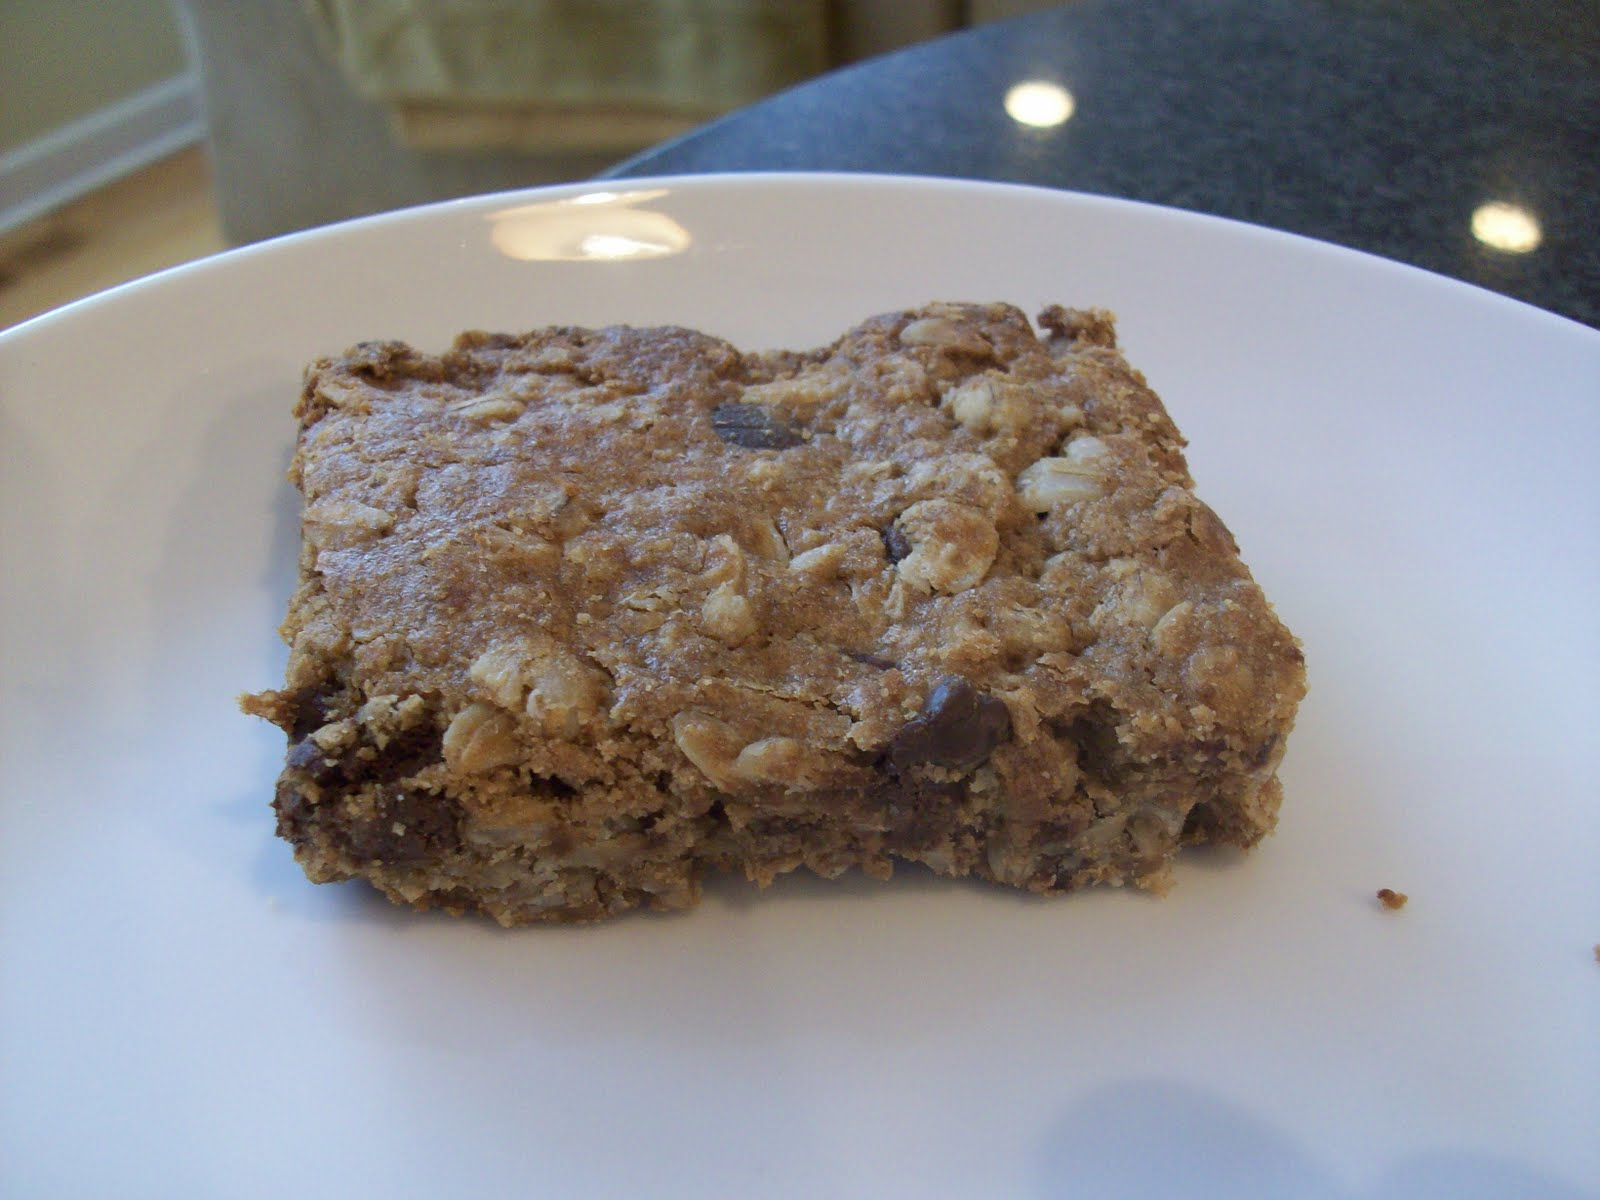 The nut free mom blog food allergy treats two nut free granola bar food allergy treats two nut free granola bar recipes forumfinder Images